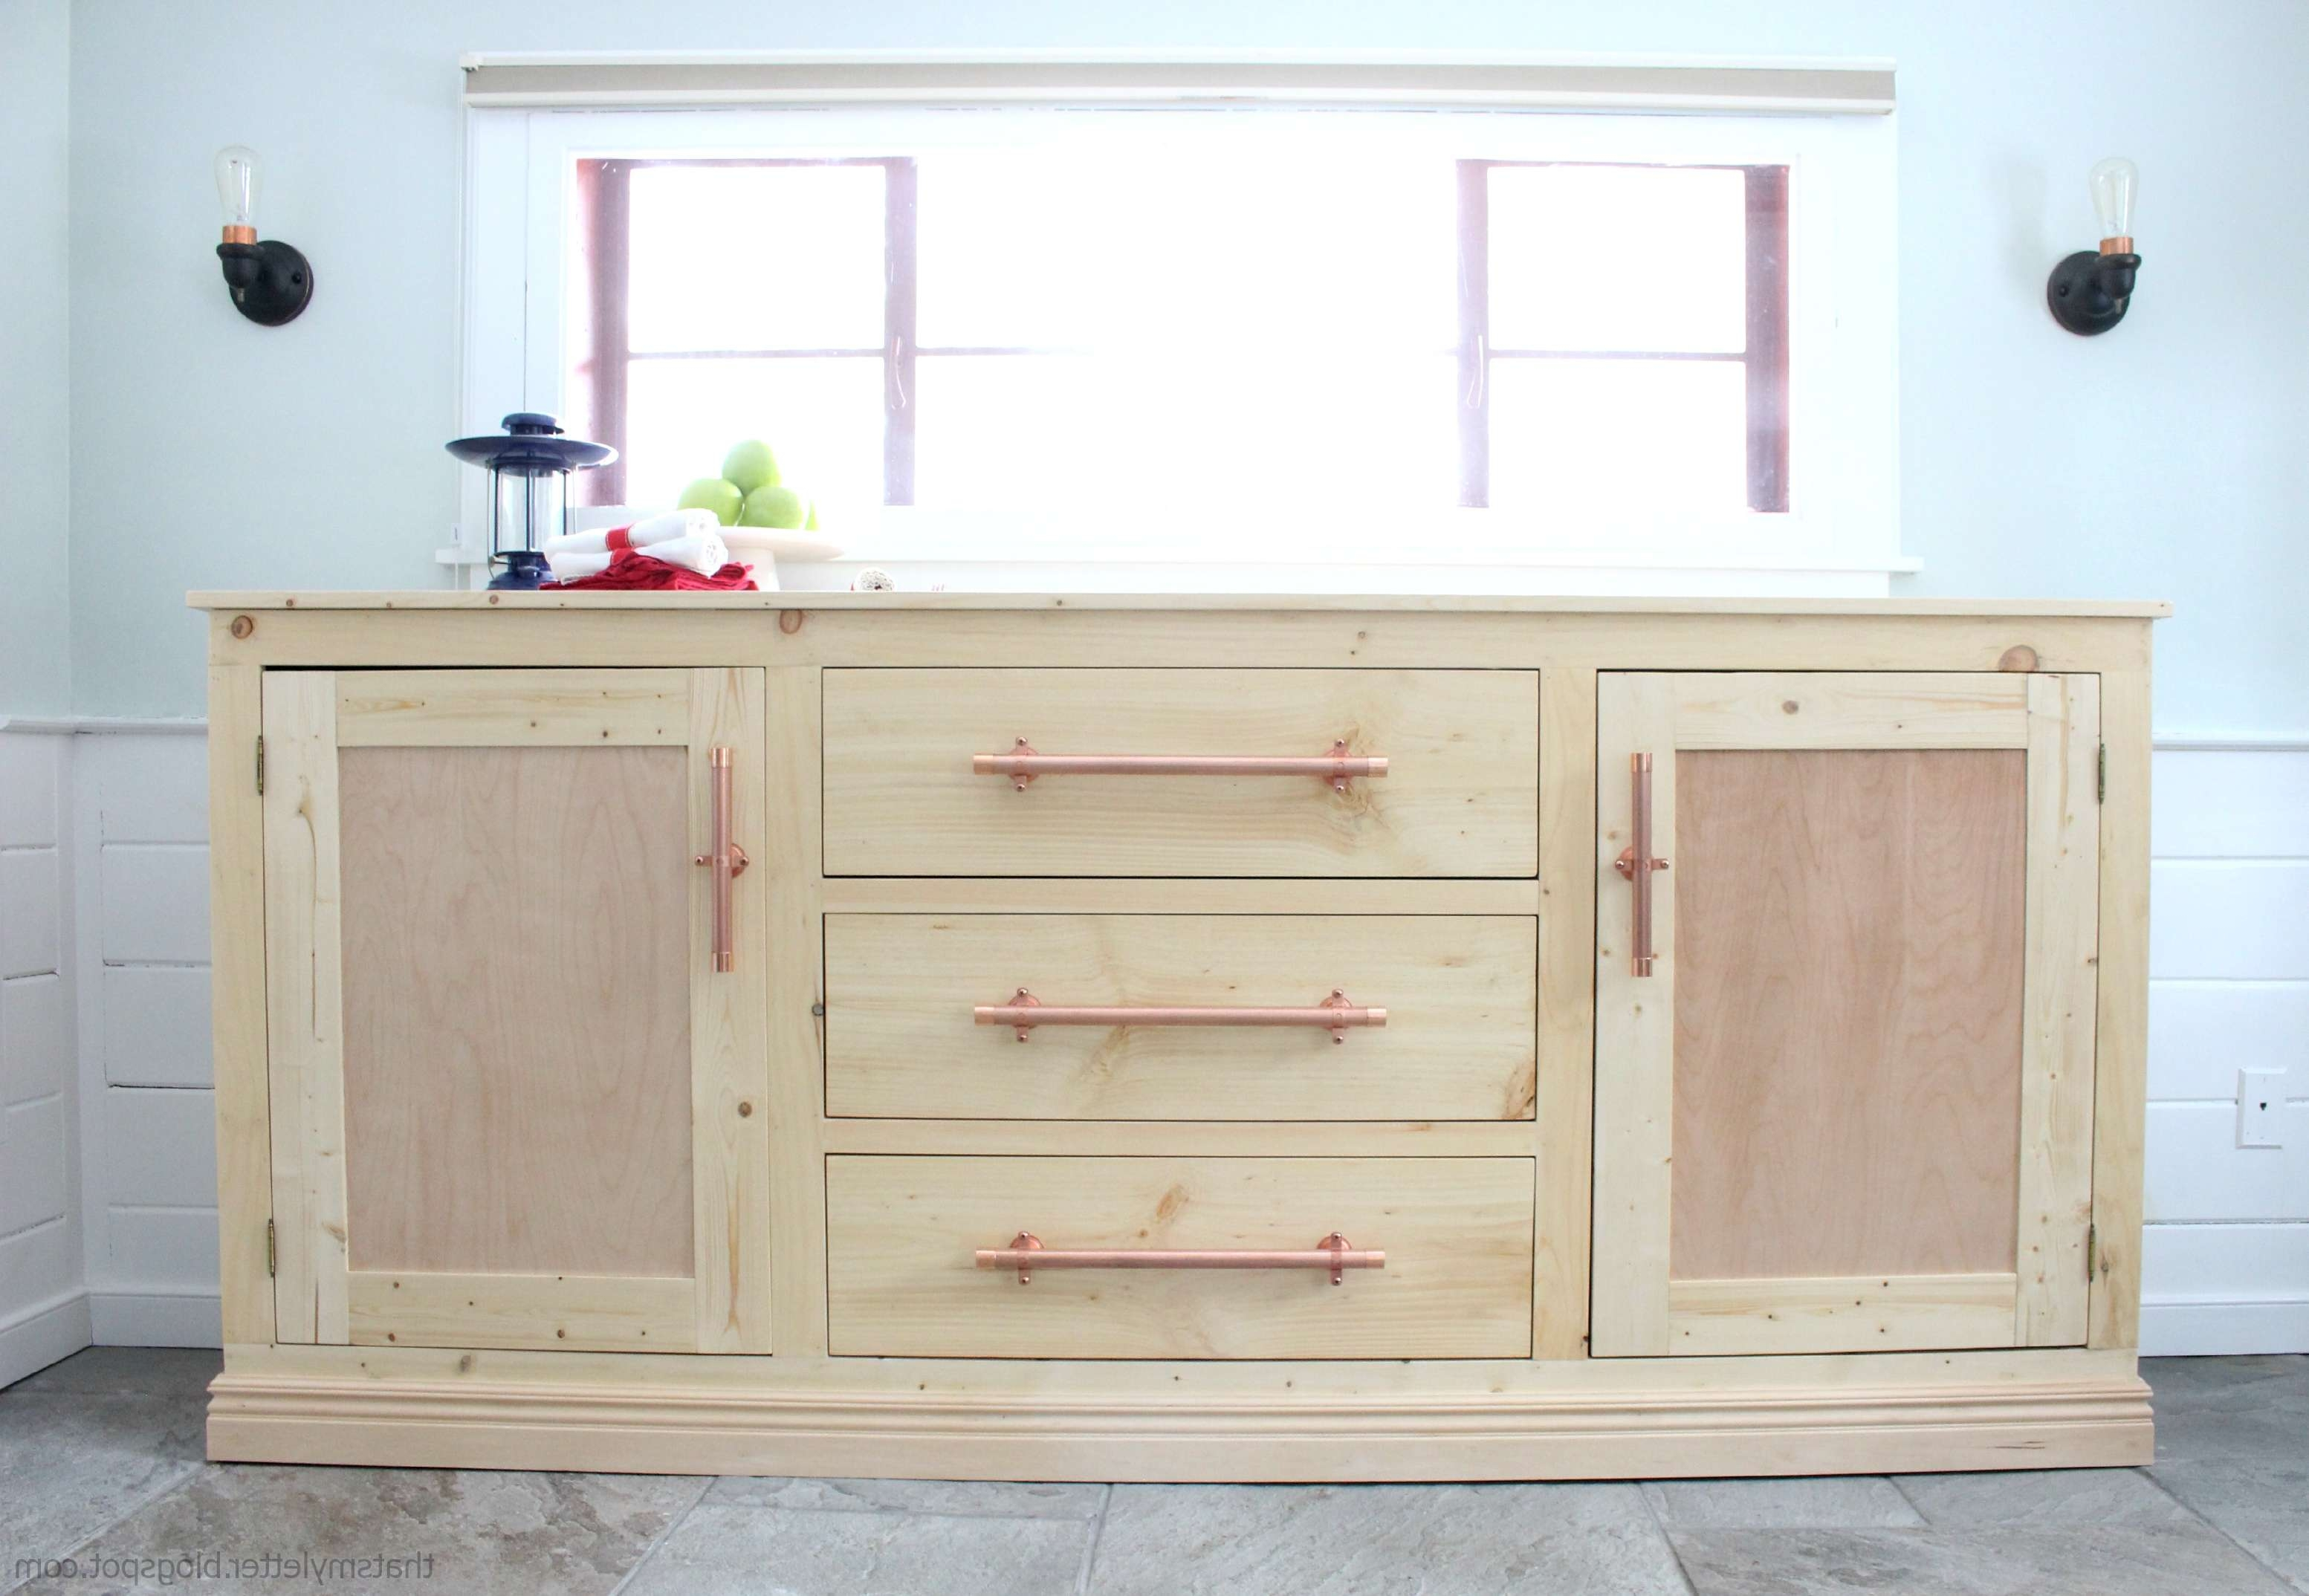 Ana White | Extra Long Buffet Cabinet – Diy Projects With Regard To Extra Long Sideboards And Buffets (View 1 of 20)